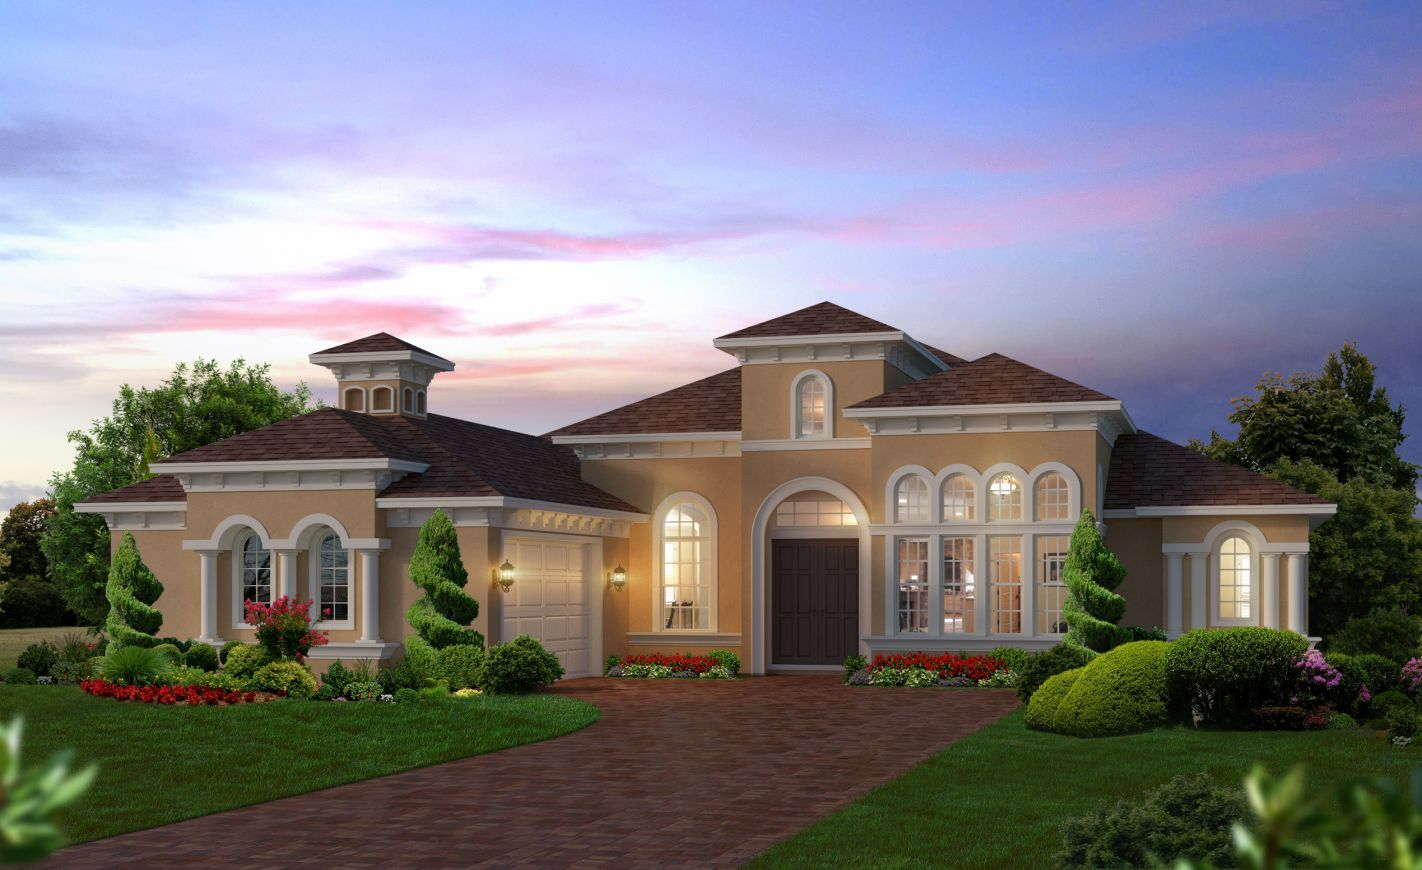 Single Family for Sale at Plantation Bay - Isabella 100 Plantation Bay Drive Ormond Beach, Florida 32174 United States